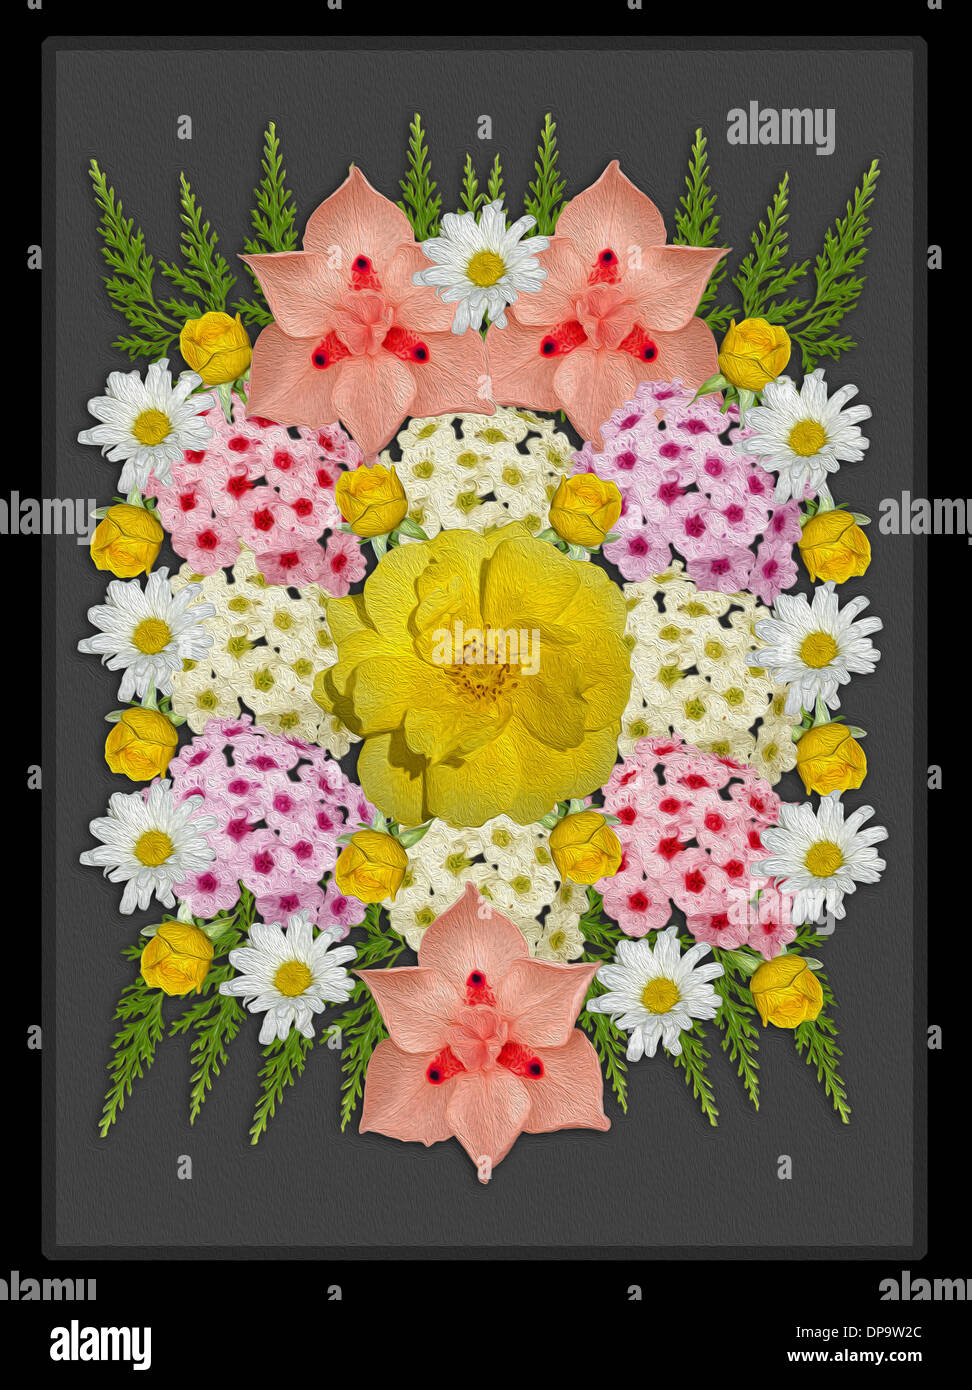 Spectacular floral art with spring flowers white daisies yellow spectacular floral art with spring flowers white daisies yellow roses and other pink and apricot blooms on grey background izmirmasajfo Image collections